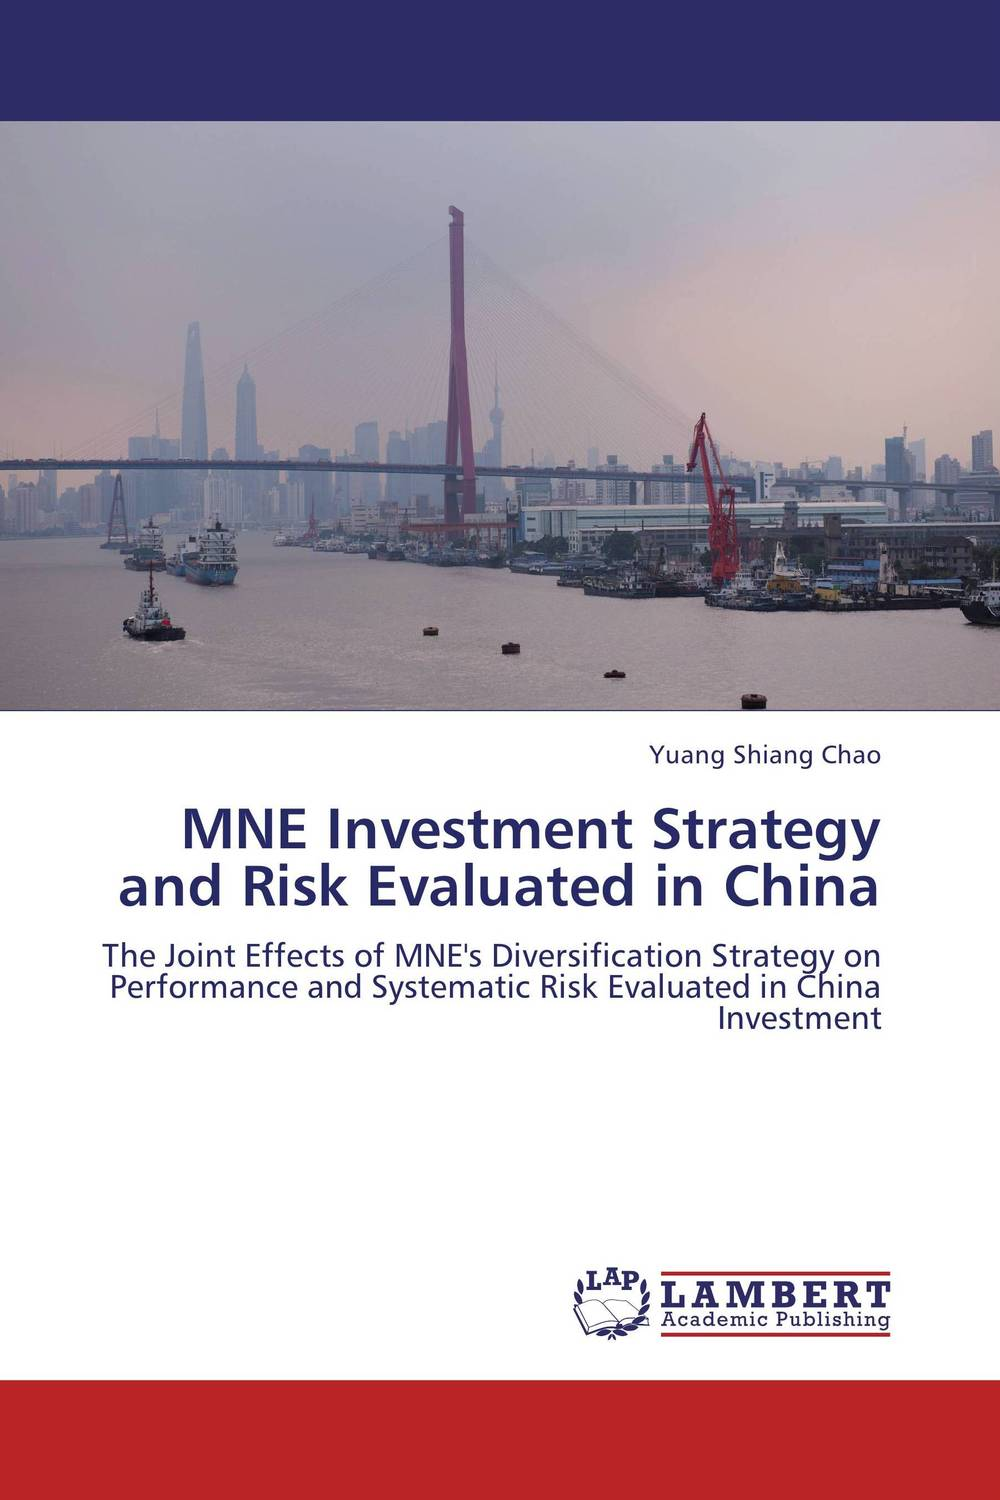 MNE Investment Strategy and Risk Evaluated in China thomas stanton managing risk and performance a guide for government decision makers